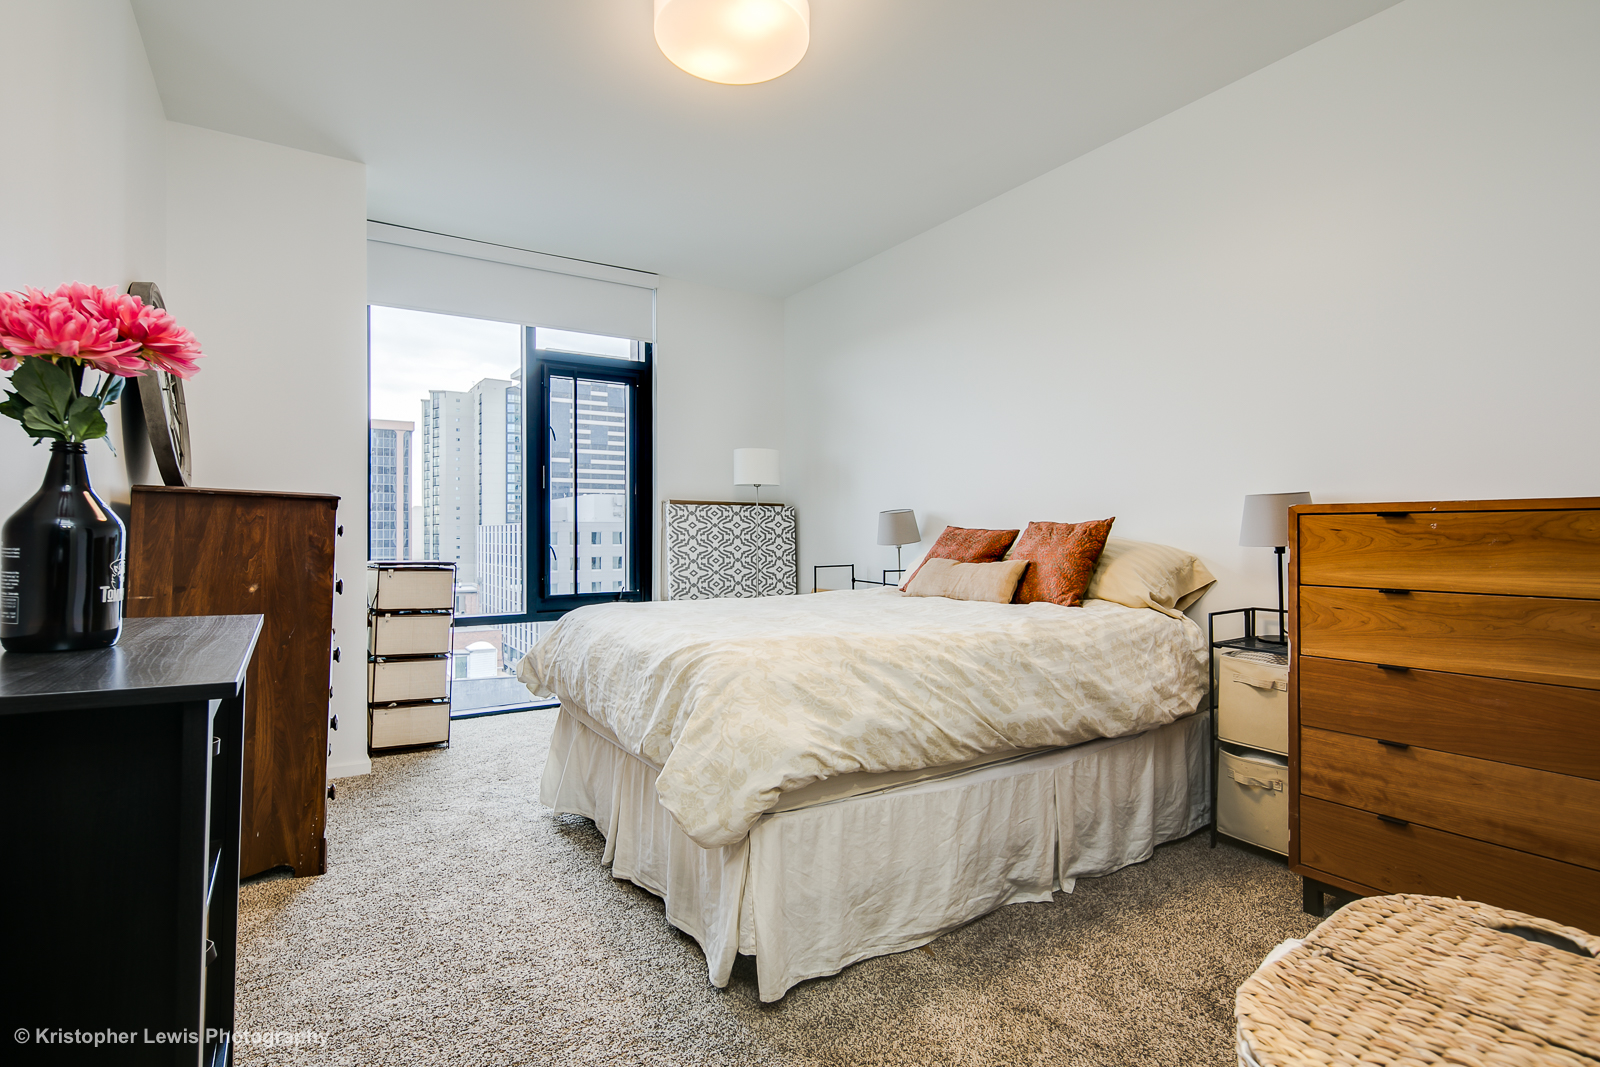 One Bedroom Apartments Denver 28 Images Two Bedroom Apartments Denver Home Design 2 Bedroom